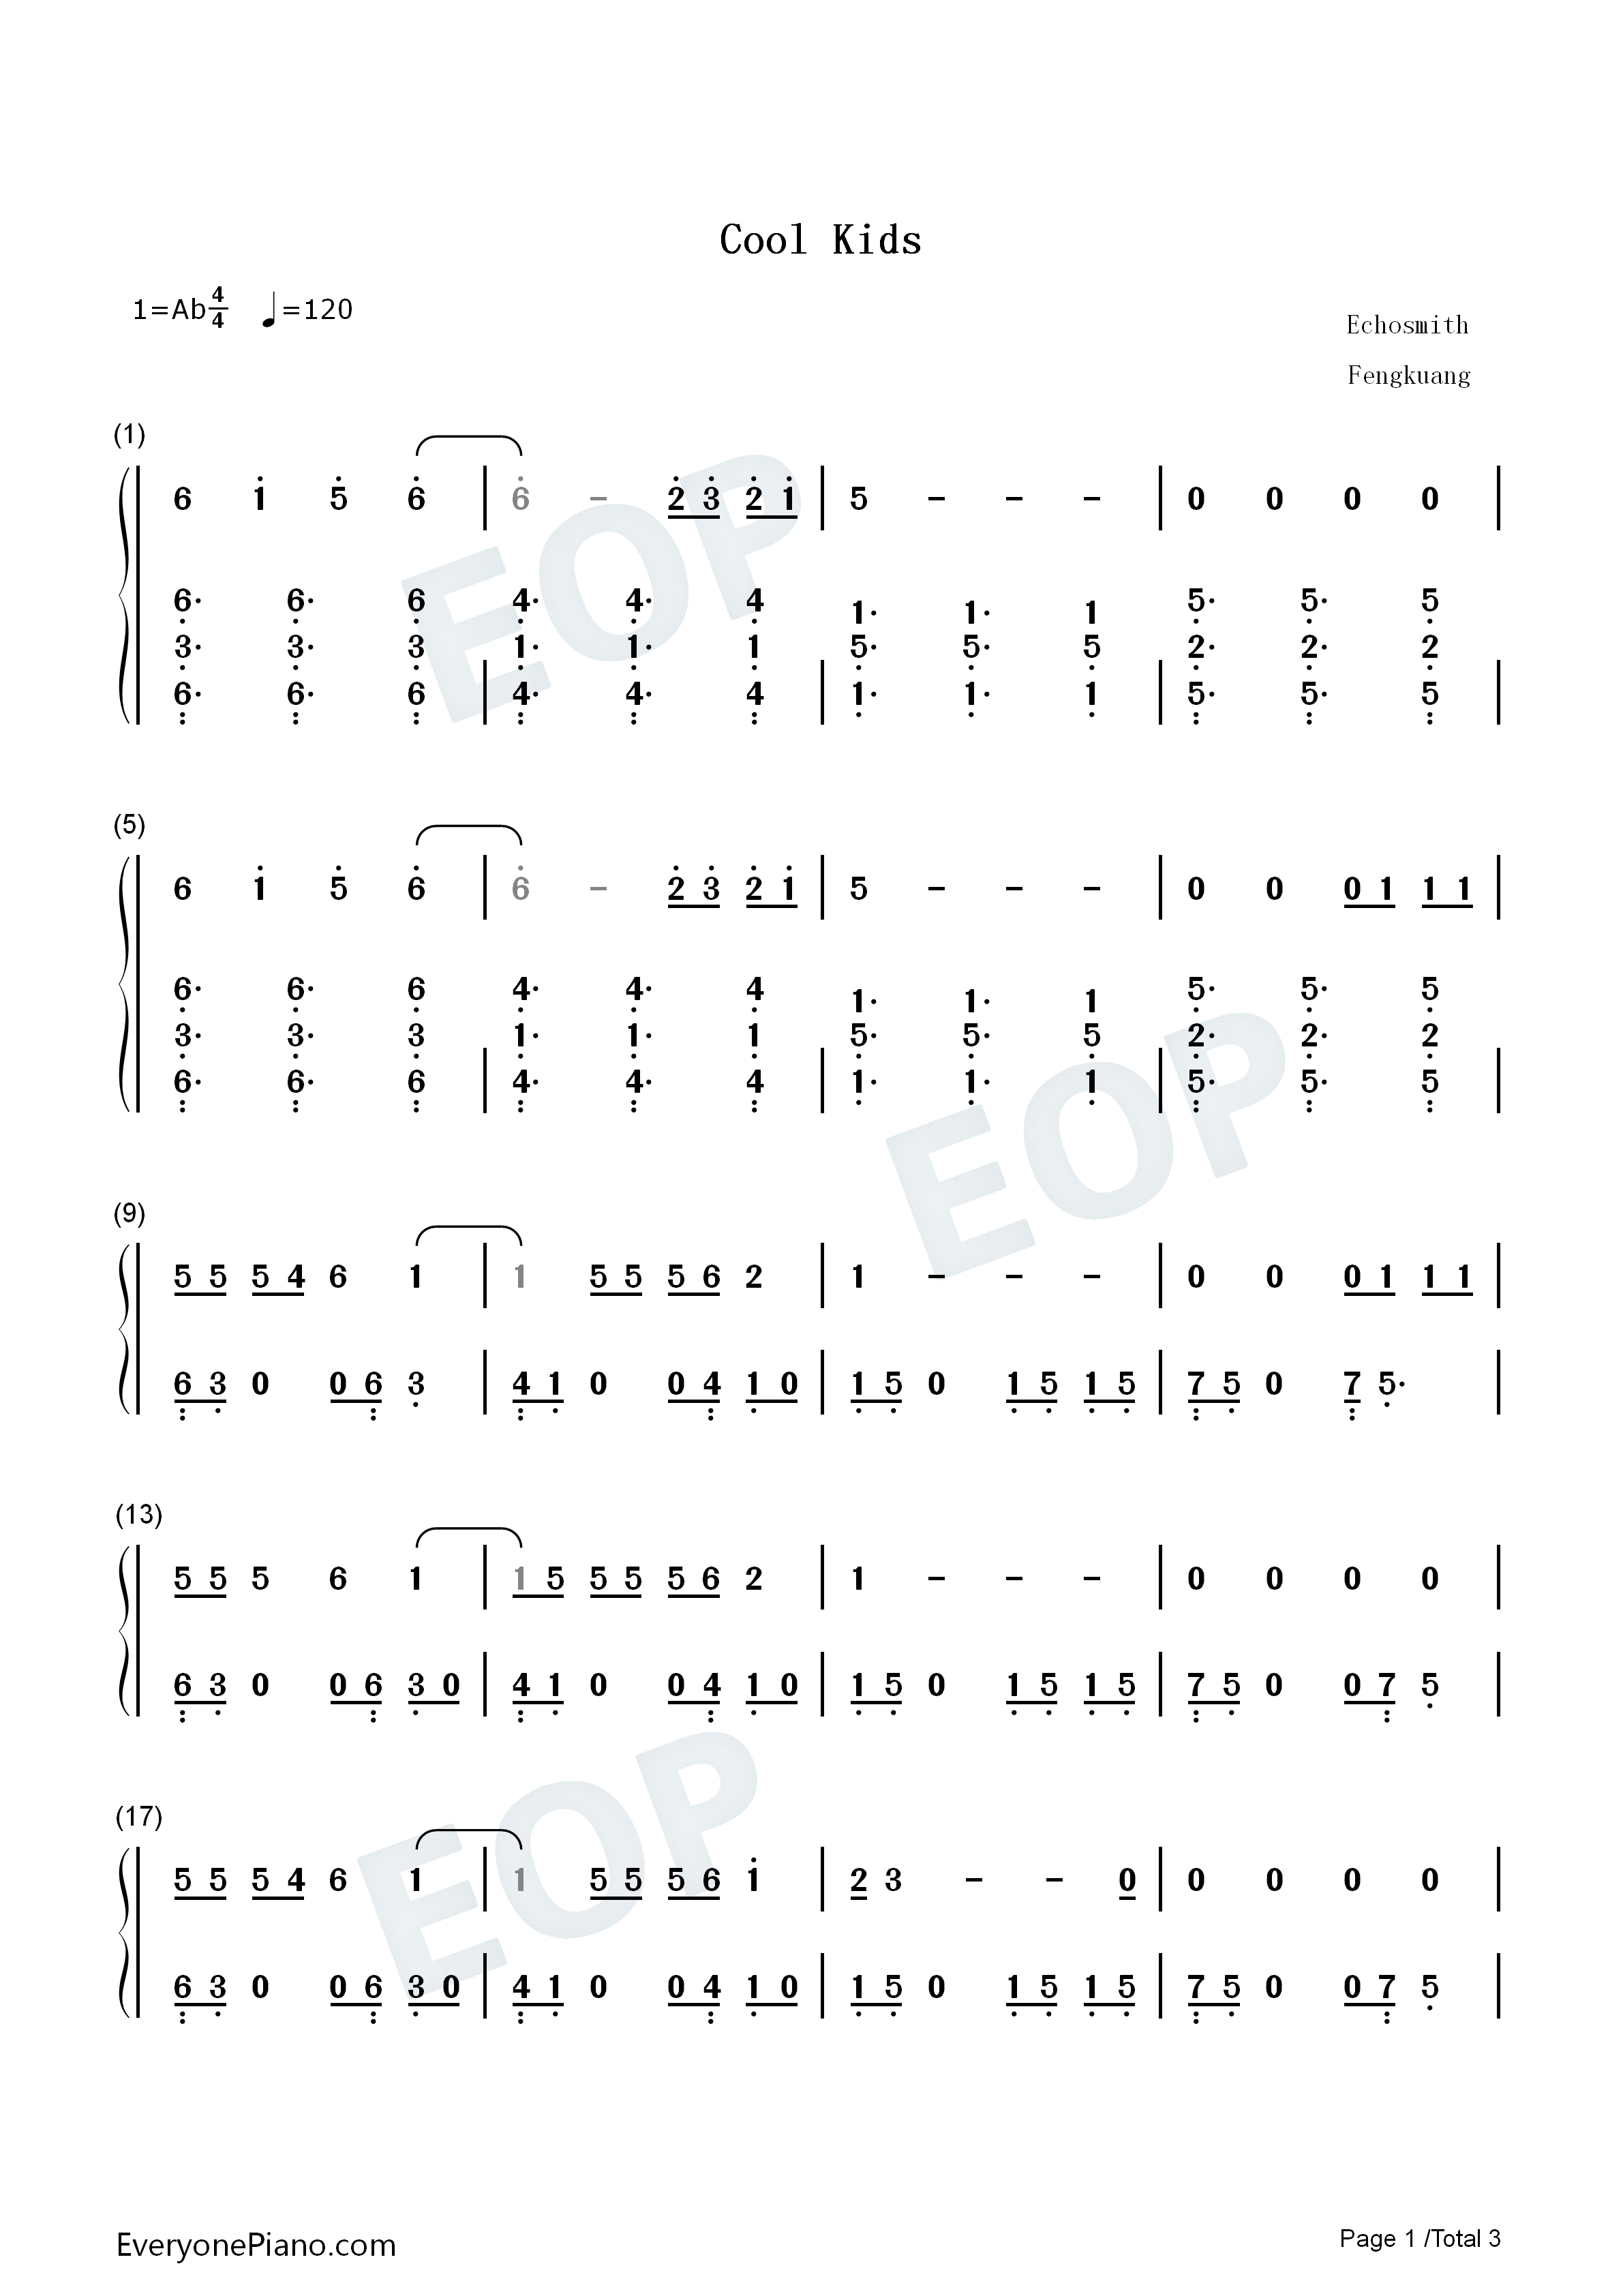 Cool Kids-Echosmith Numbered Musical Notation Preview 1-Free Piano Sheet Music u0026 Piano Chords